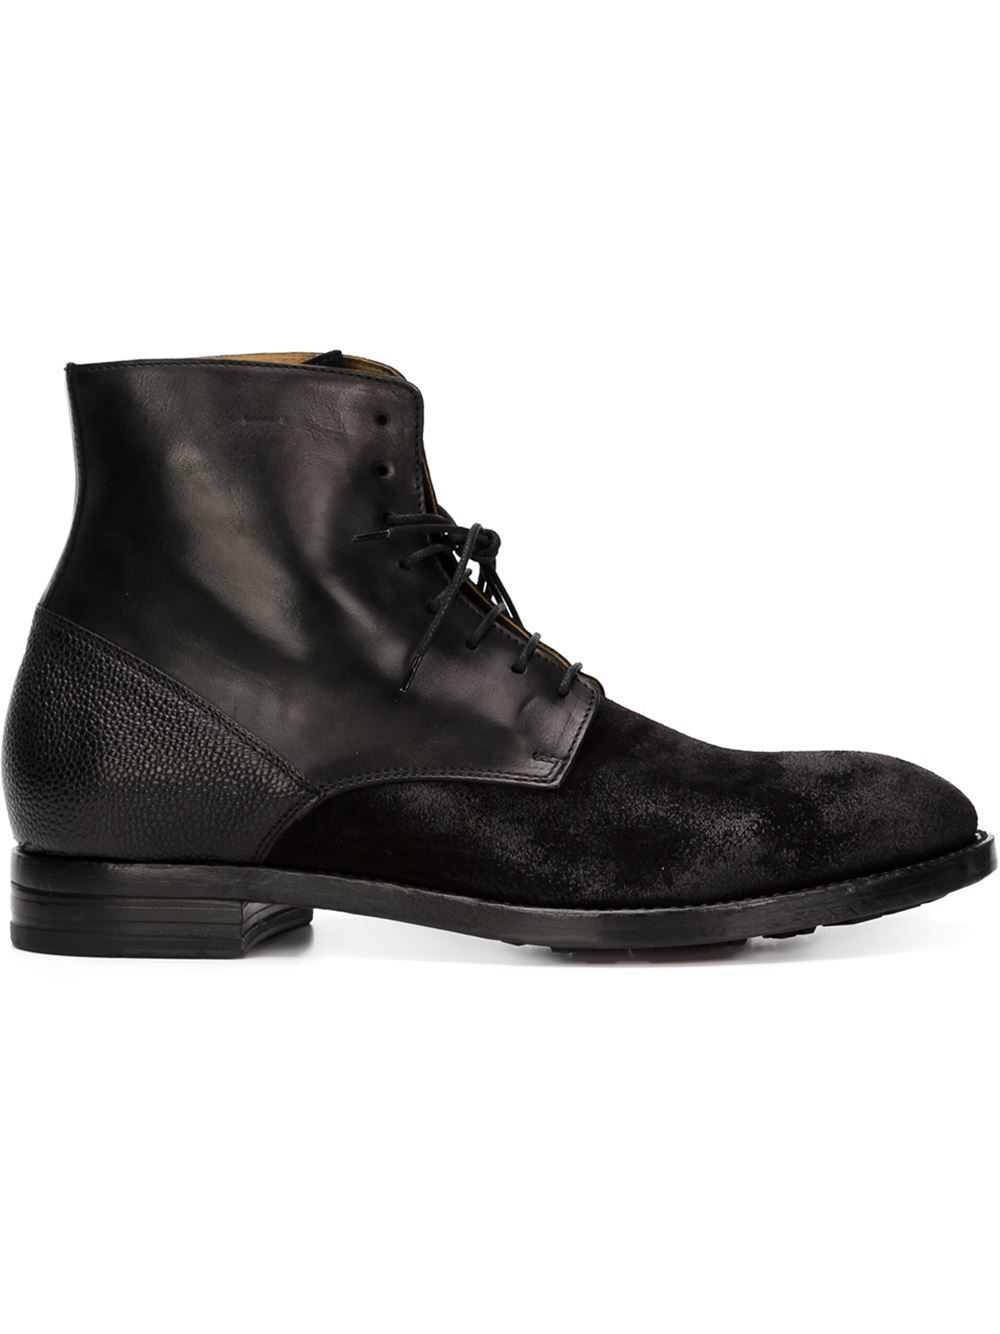 Discount Shop Mens Buttero Lace-Up Ankle Boots Special Sales